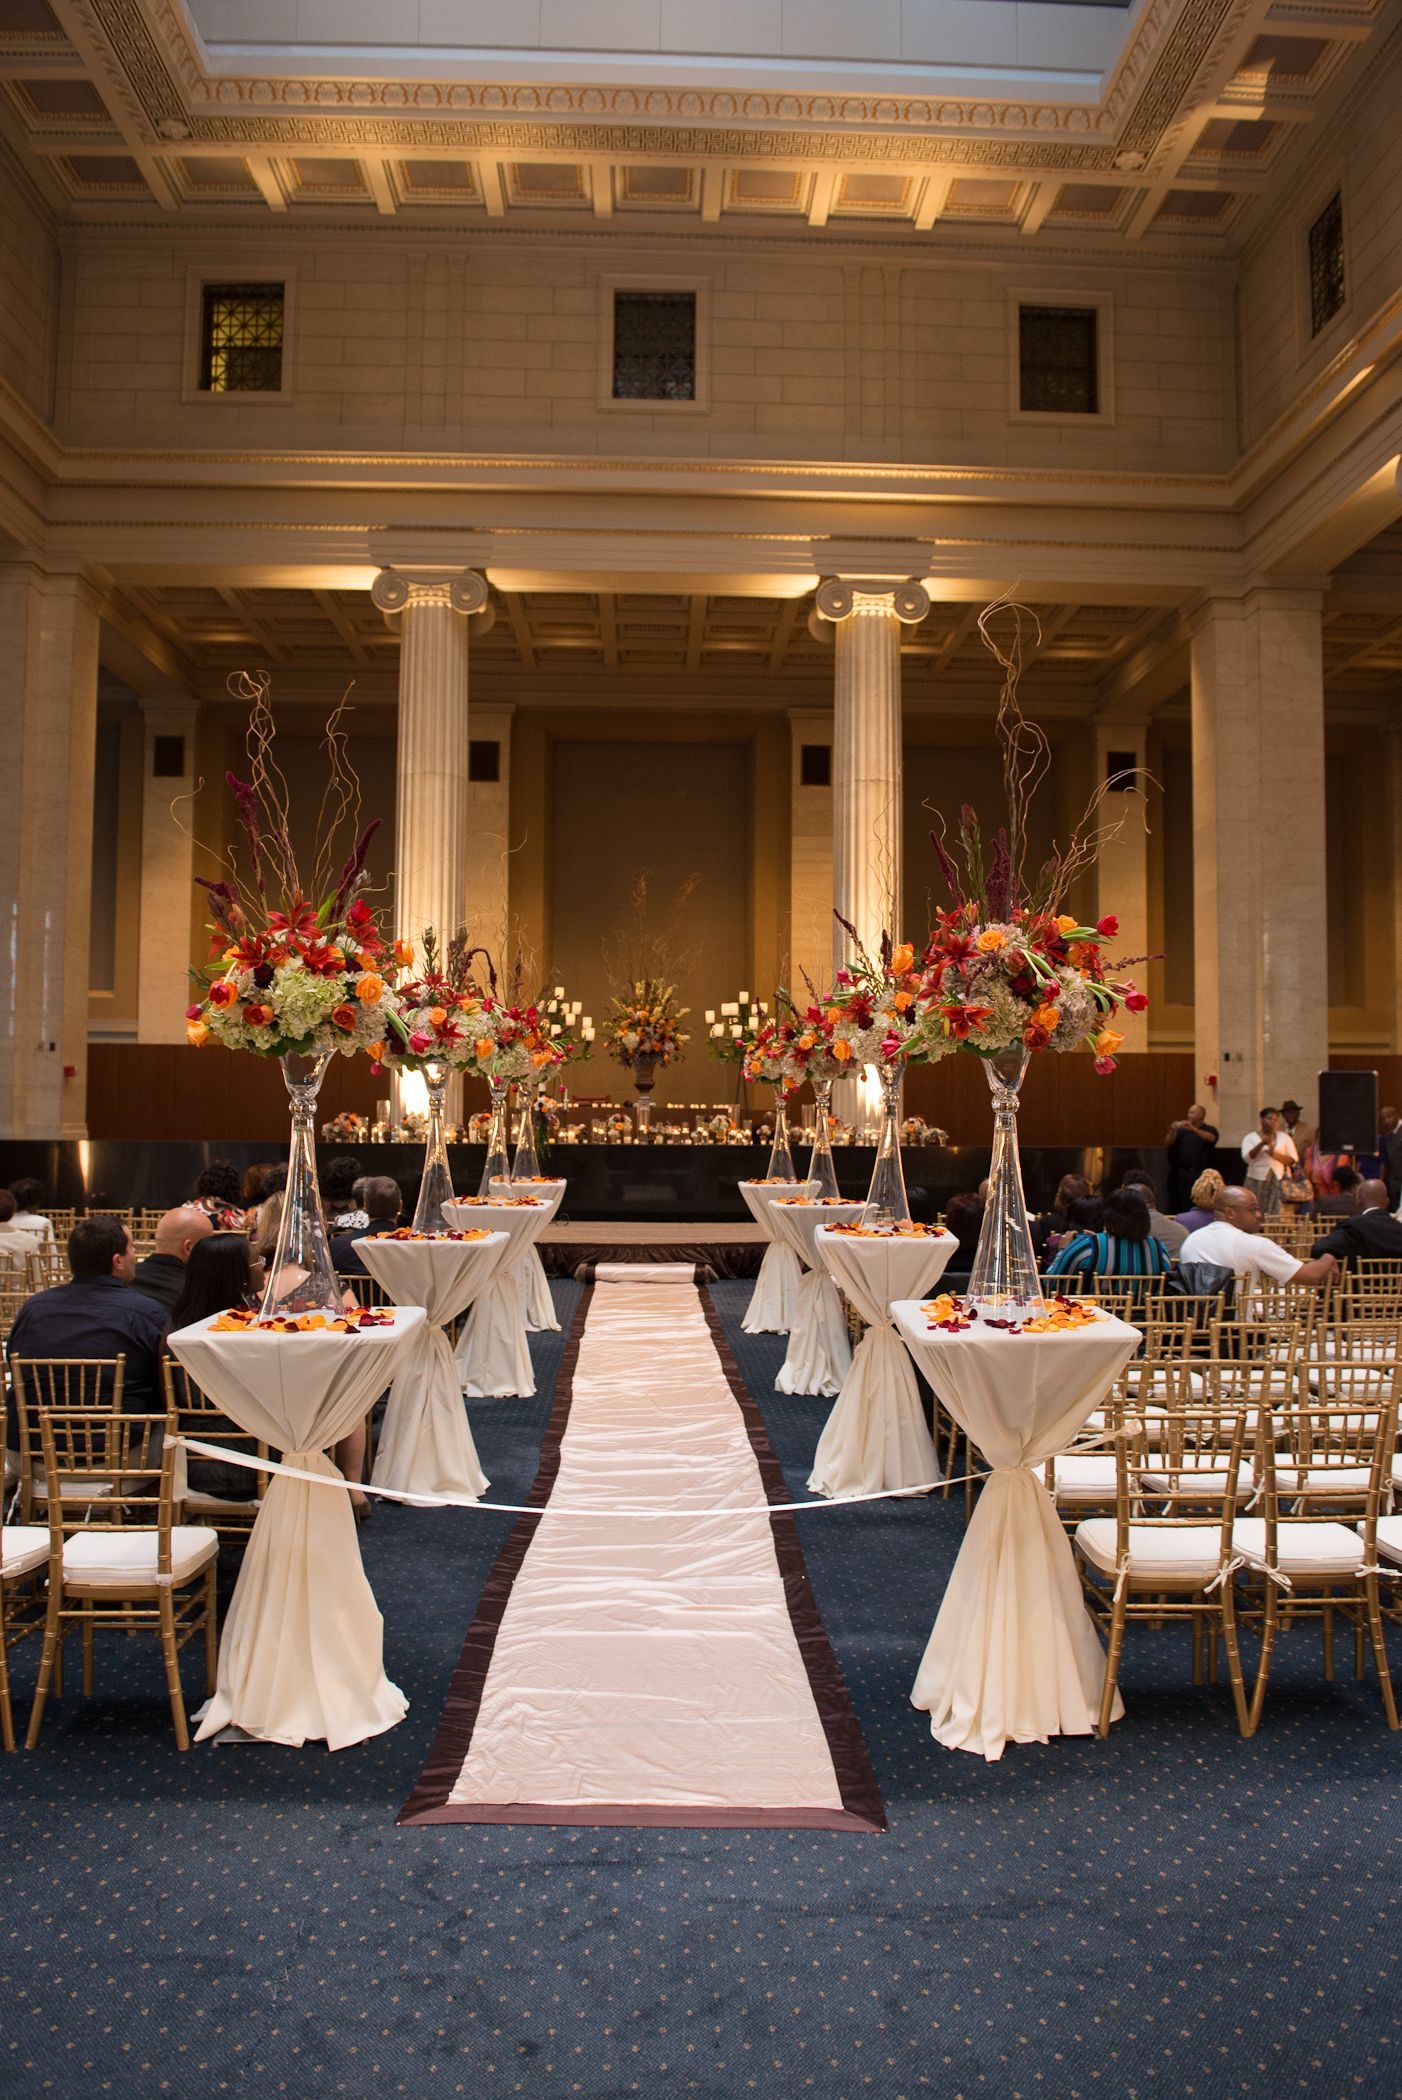 Wedding At The Columns Memphis Tn Southern Event Planners Photo By Nathan Rye Memphis Weddings Memphis Wedding Planner Tennessee Wedding Venues